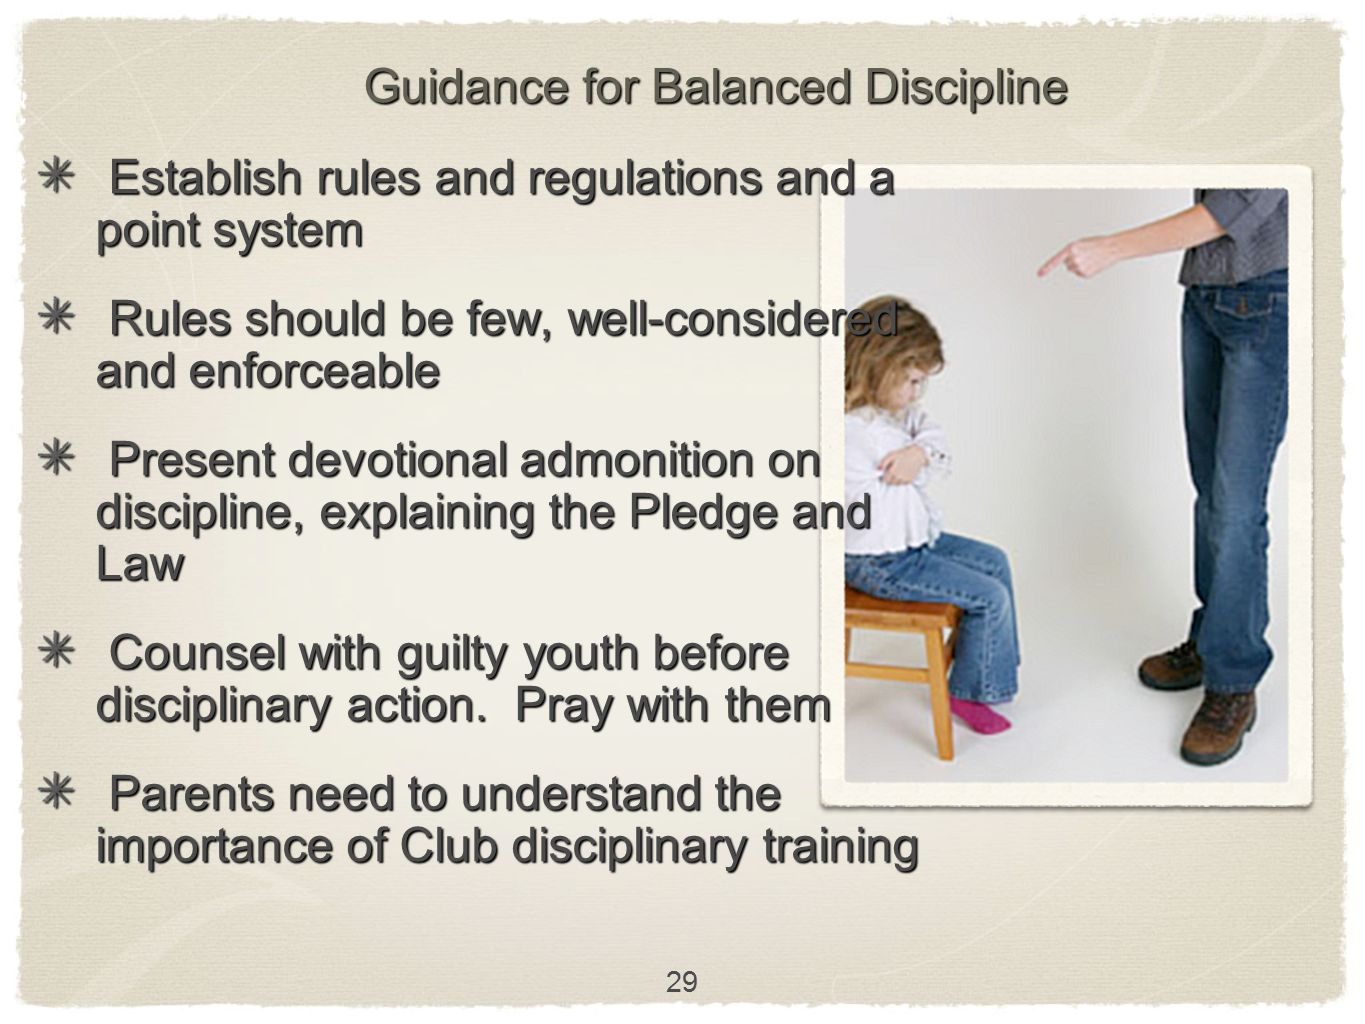 Guidance for Balanced Discipline